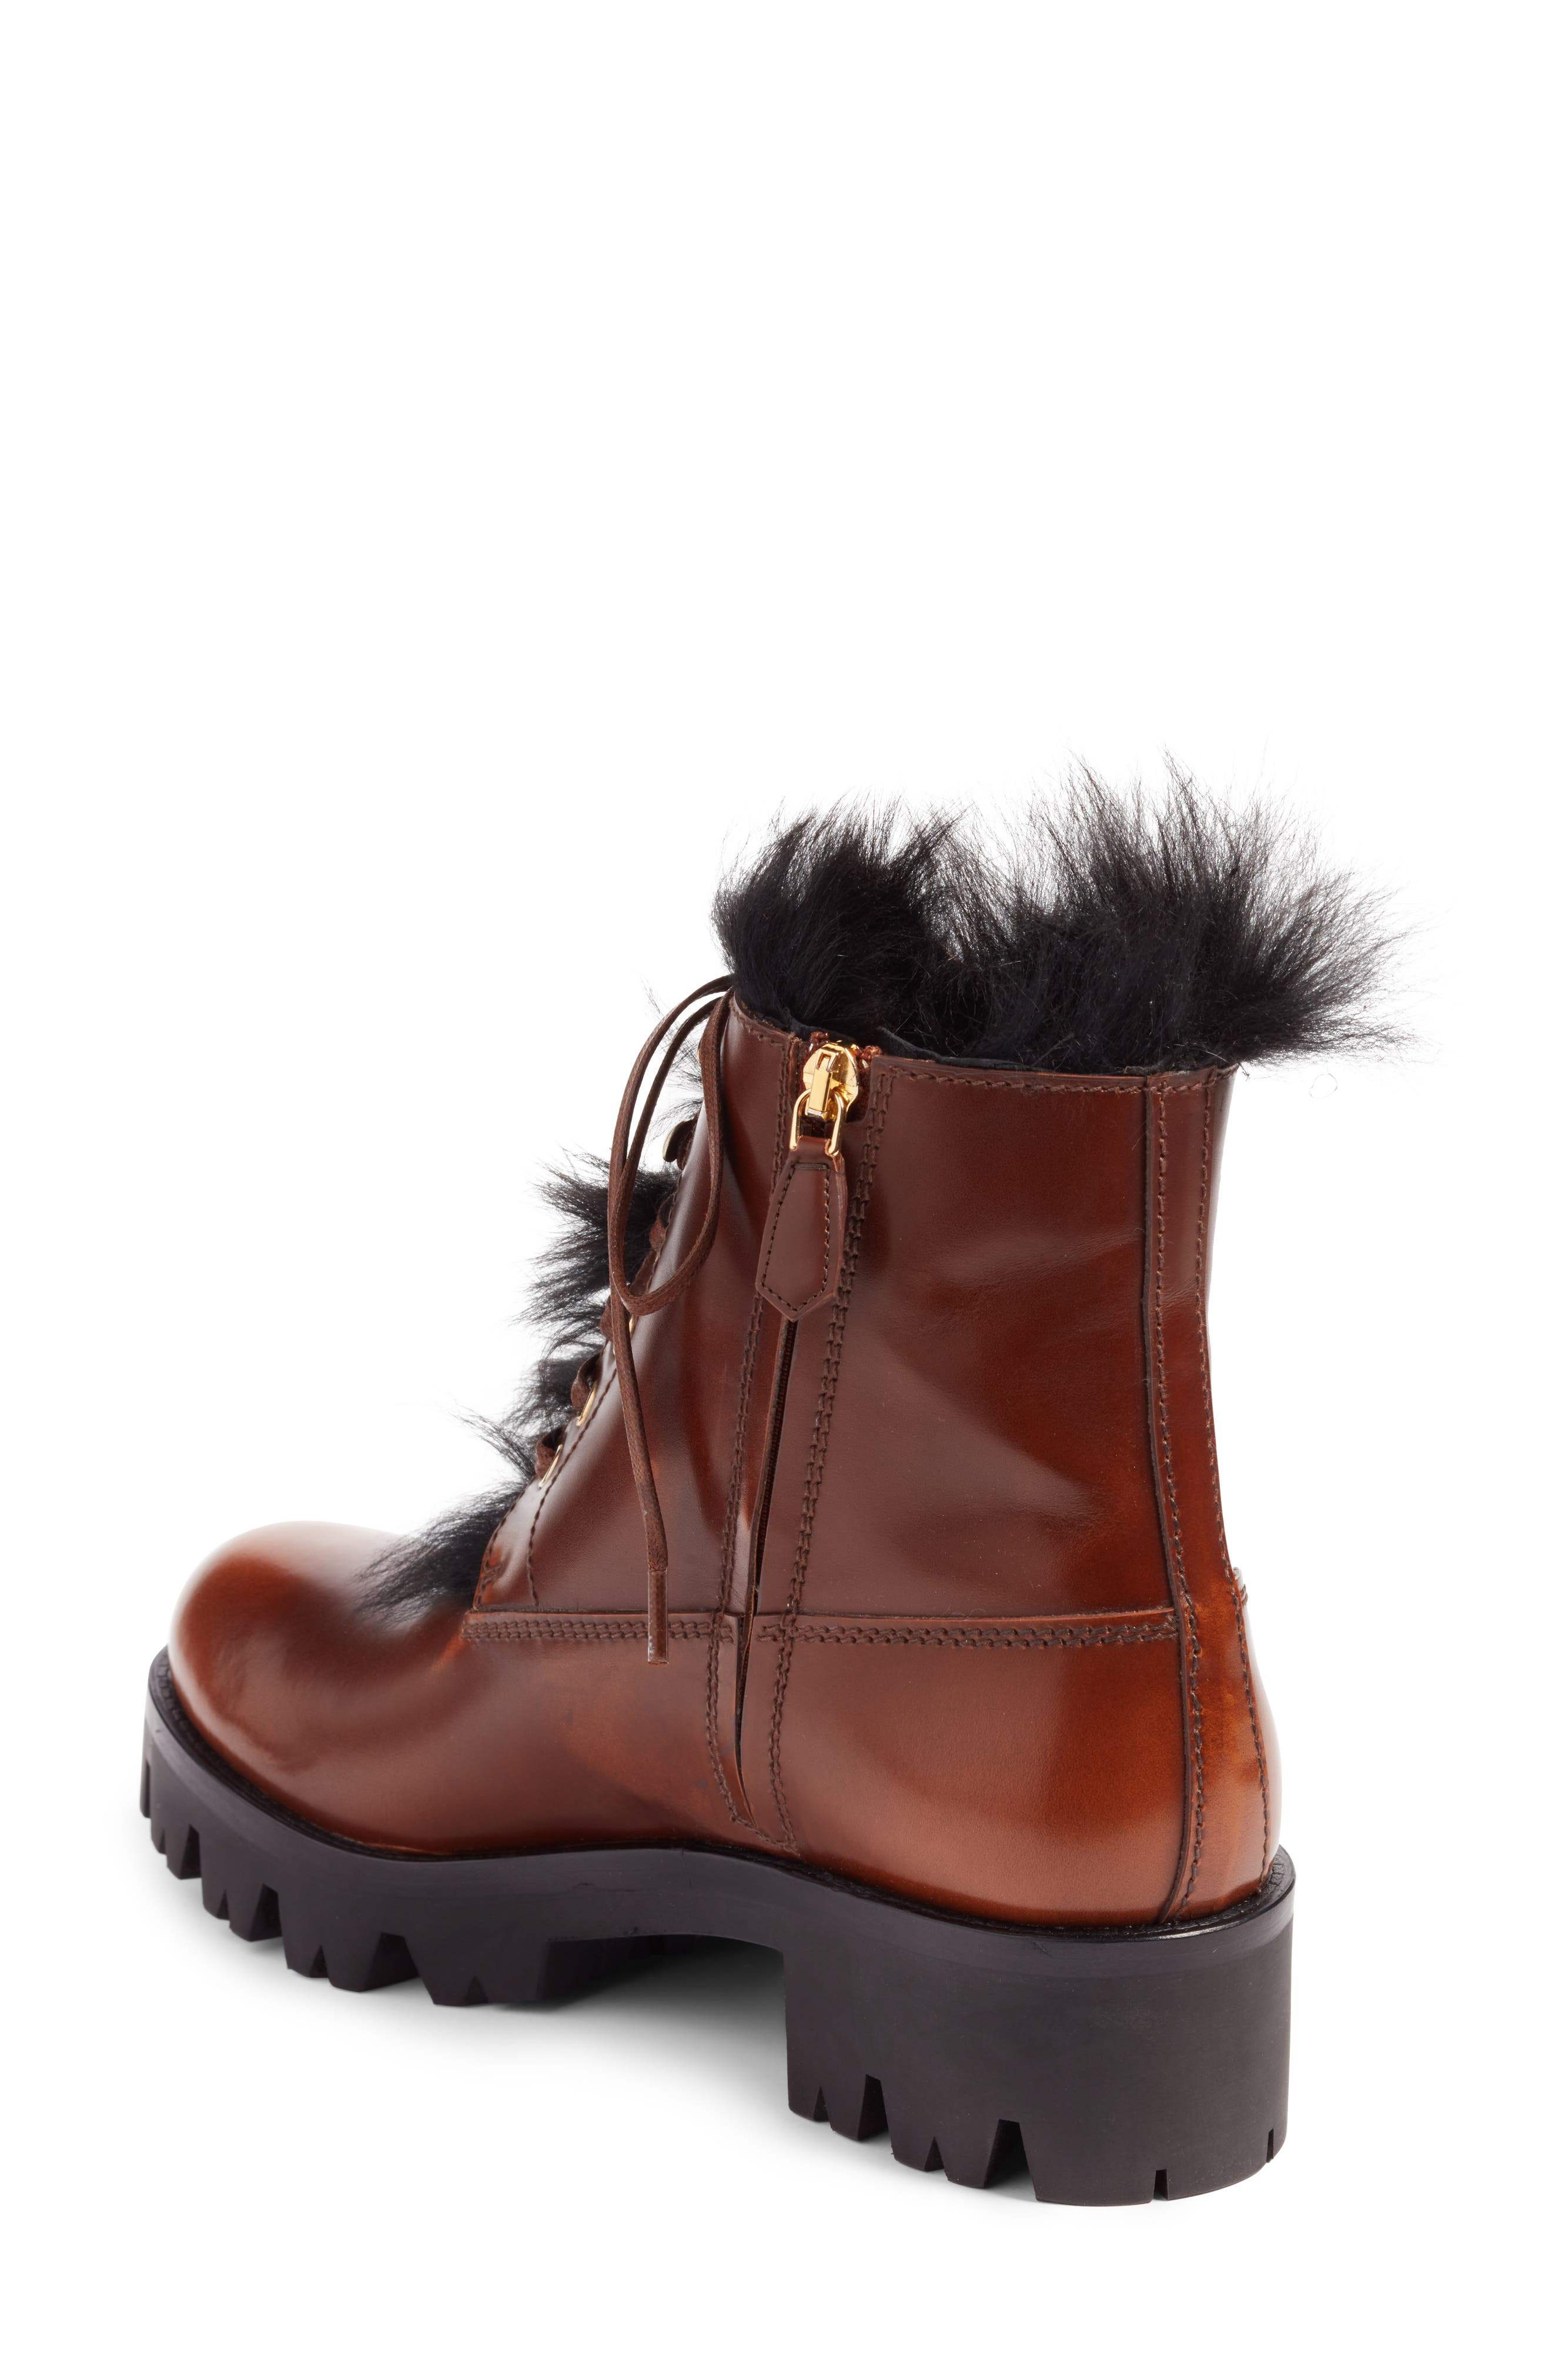 Calfskin Boot with Genuine Shearling Trim,                             Alternate thumbnail 2, color,                             Brown